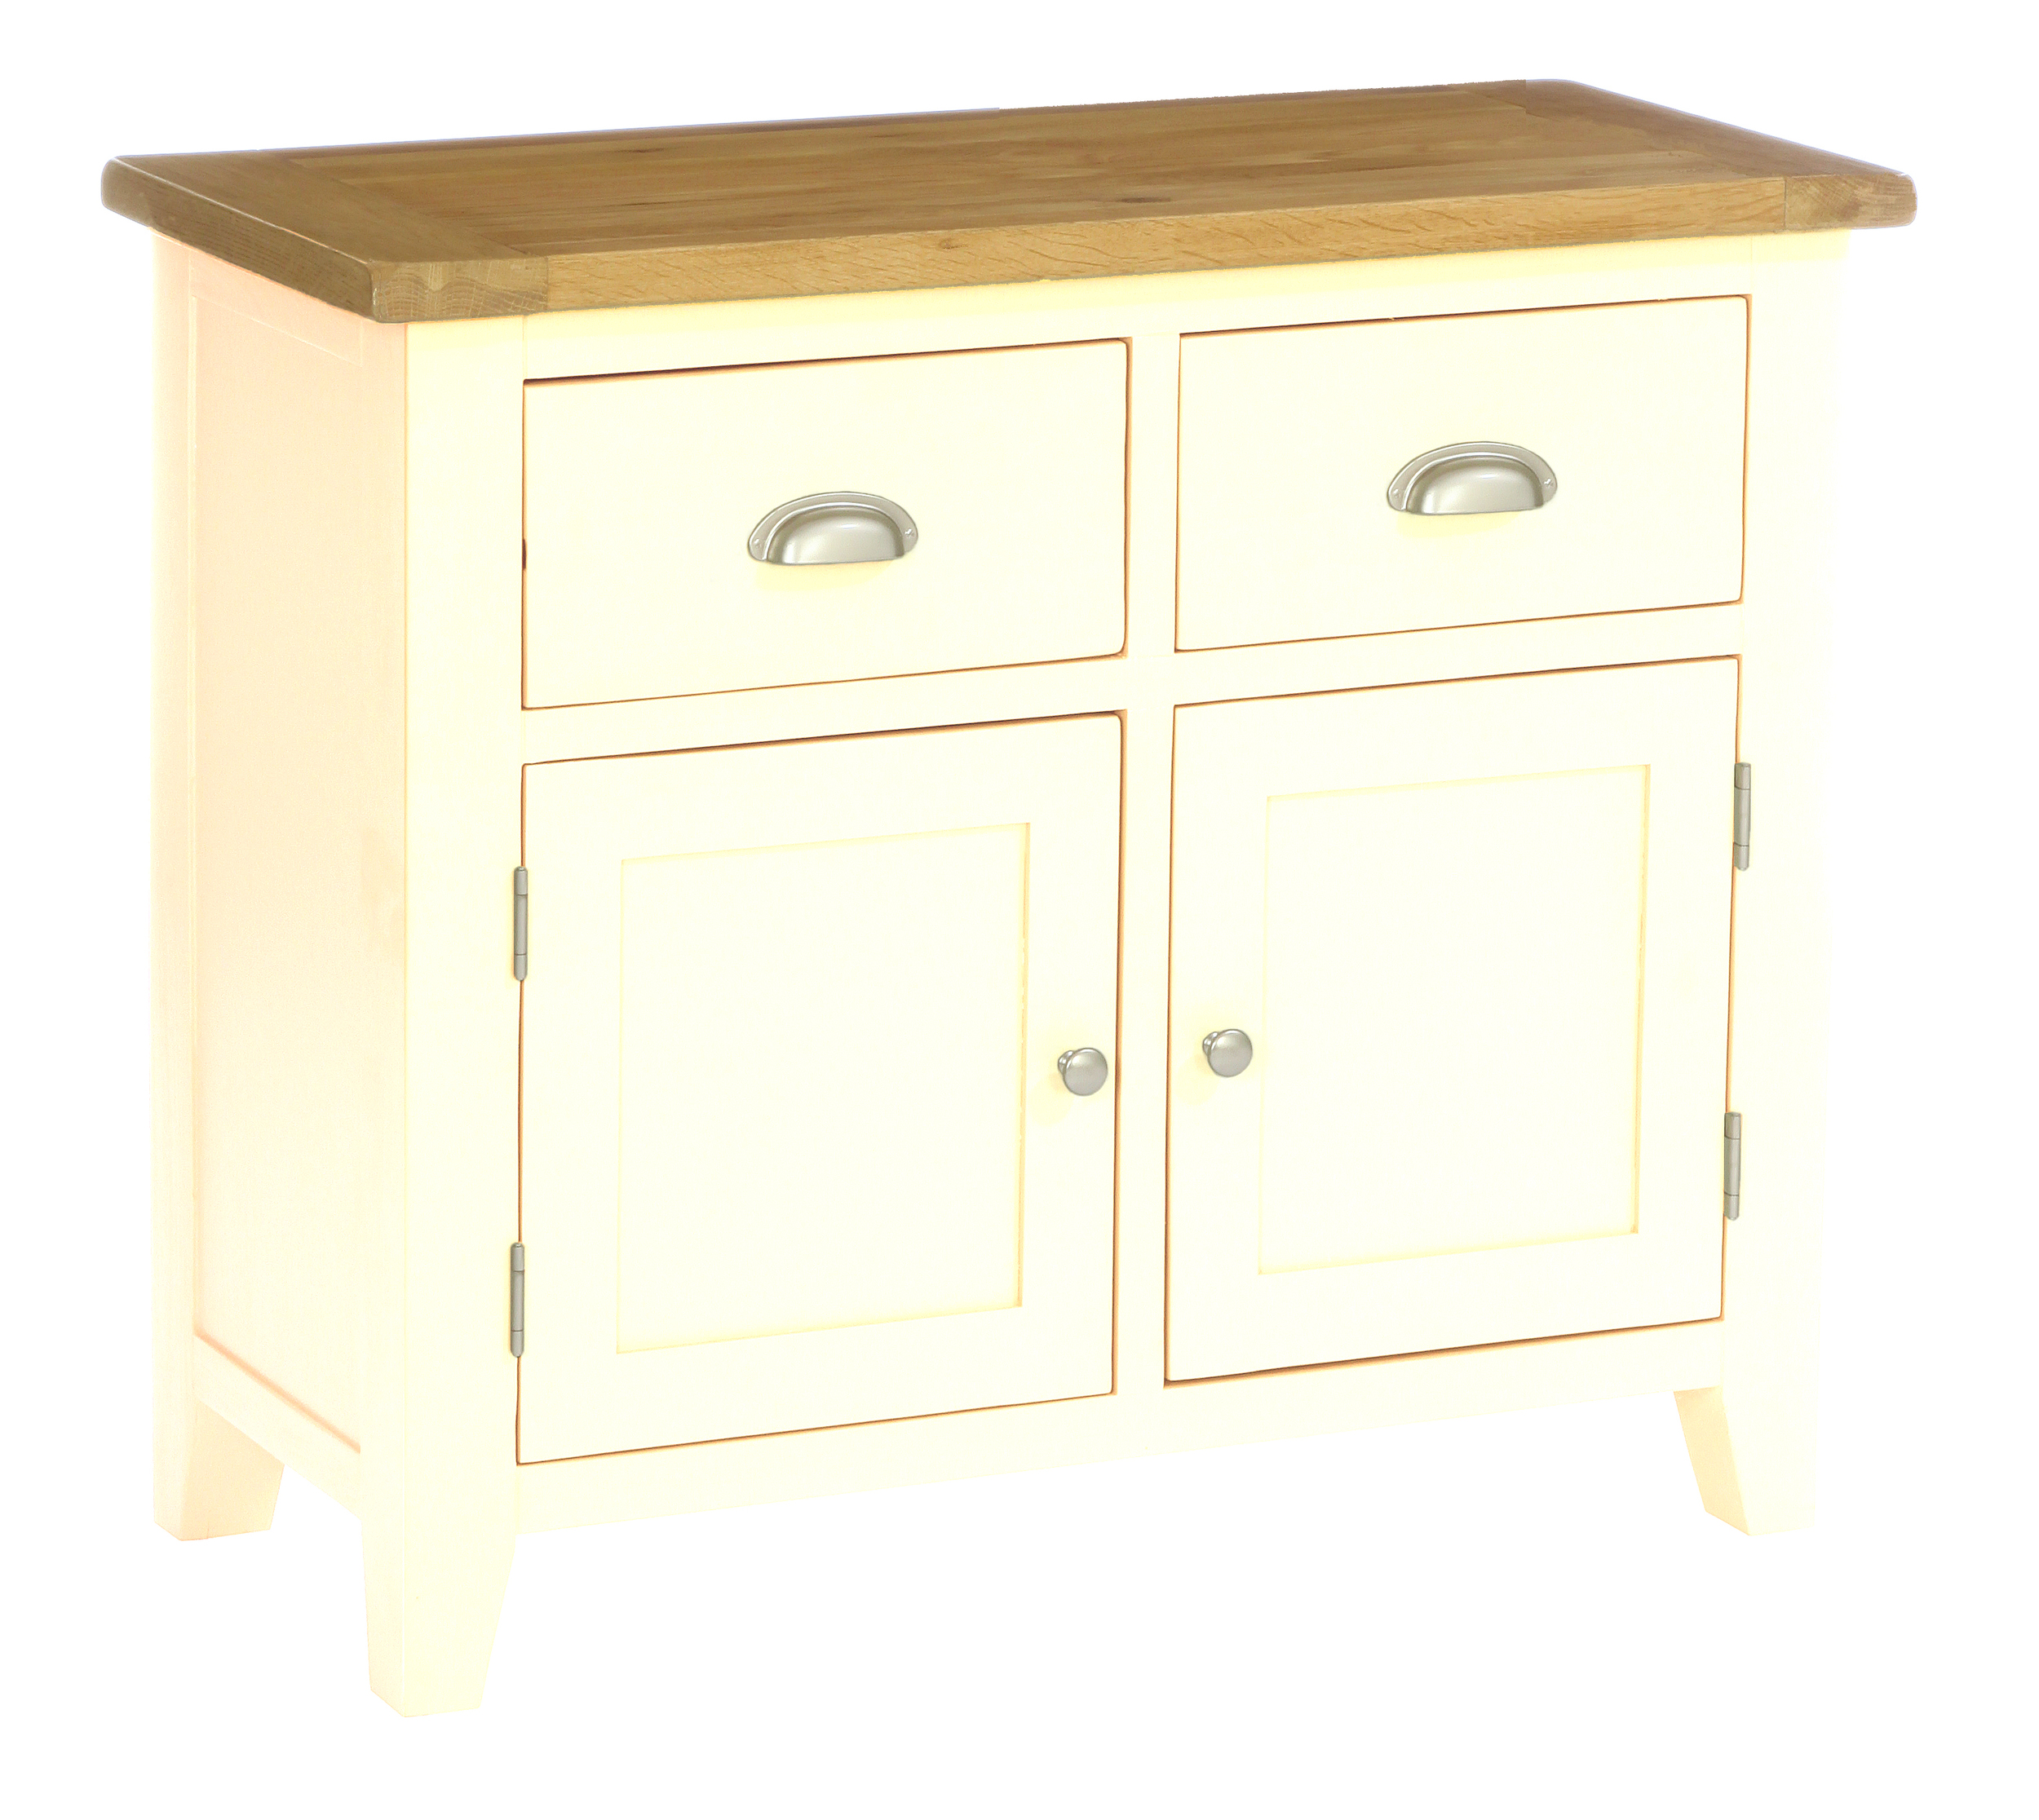 2 Door, 2 Drawer Sideboard/ Dresser Base  Colour-Ivory  w 100 x d 45 x h 85 cm  €679 ( 40% Off - NOW  € 407.40)  Product Code: CANB118B